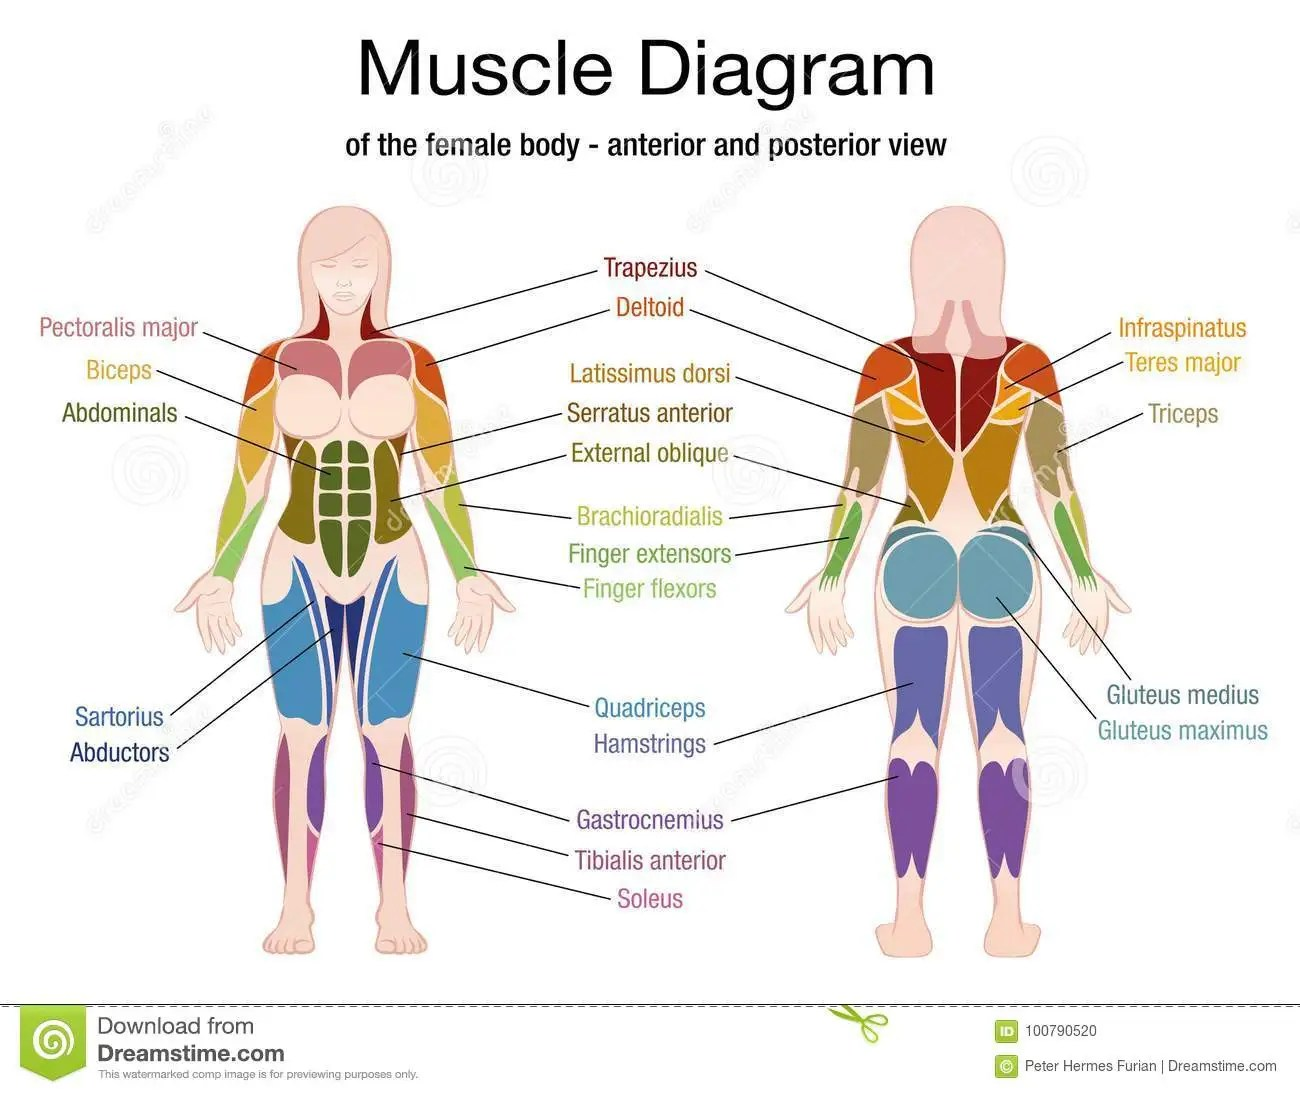 hight resolution of muscle diagram of the female body with accurate description of the most important muscles front and back view vector illustration on white background